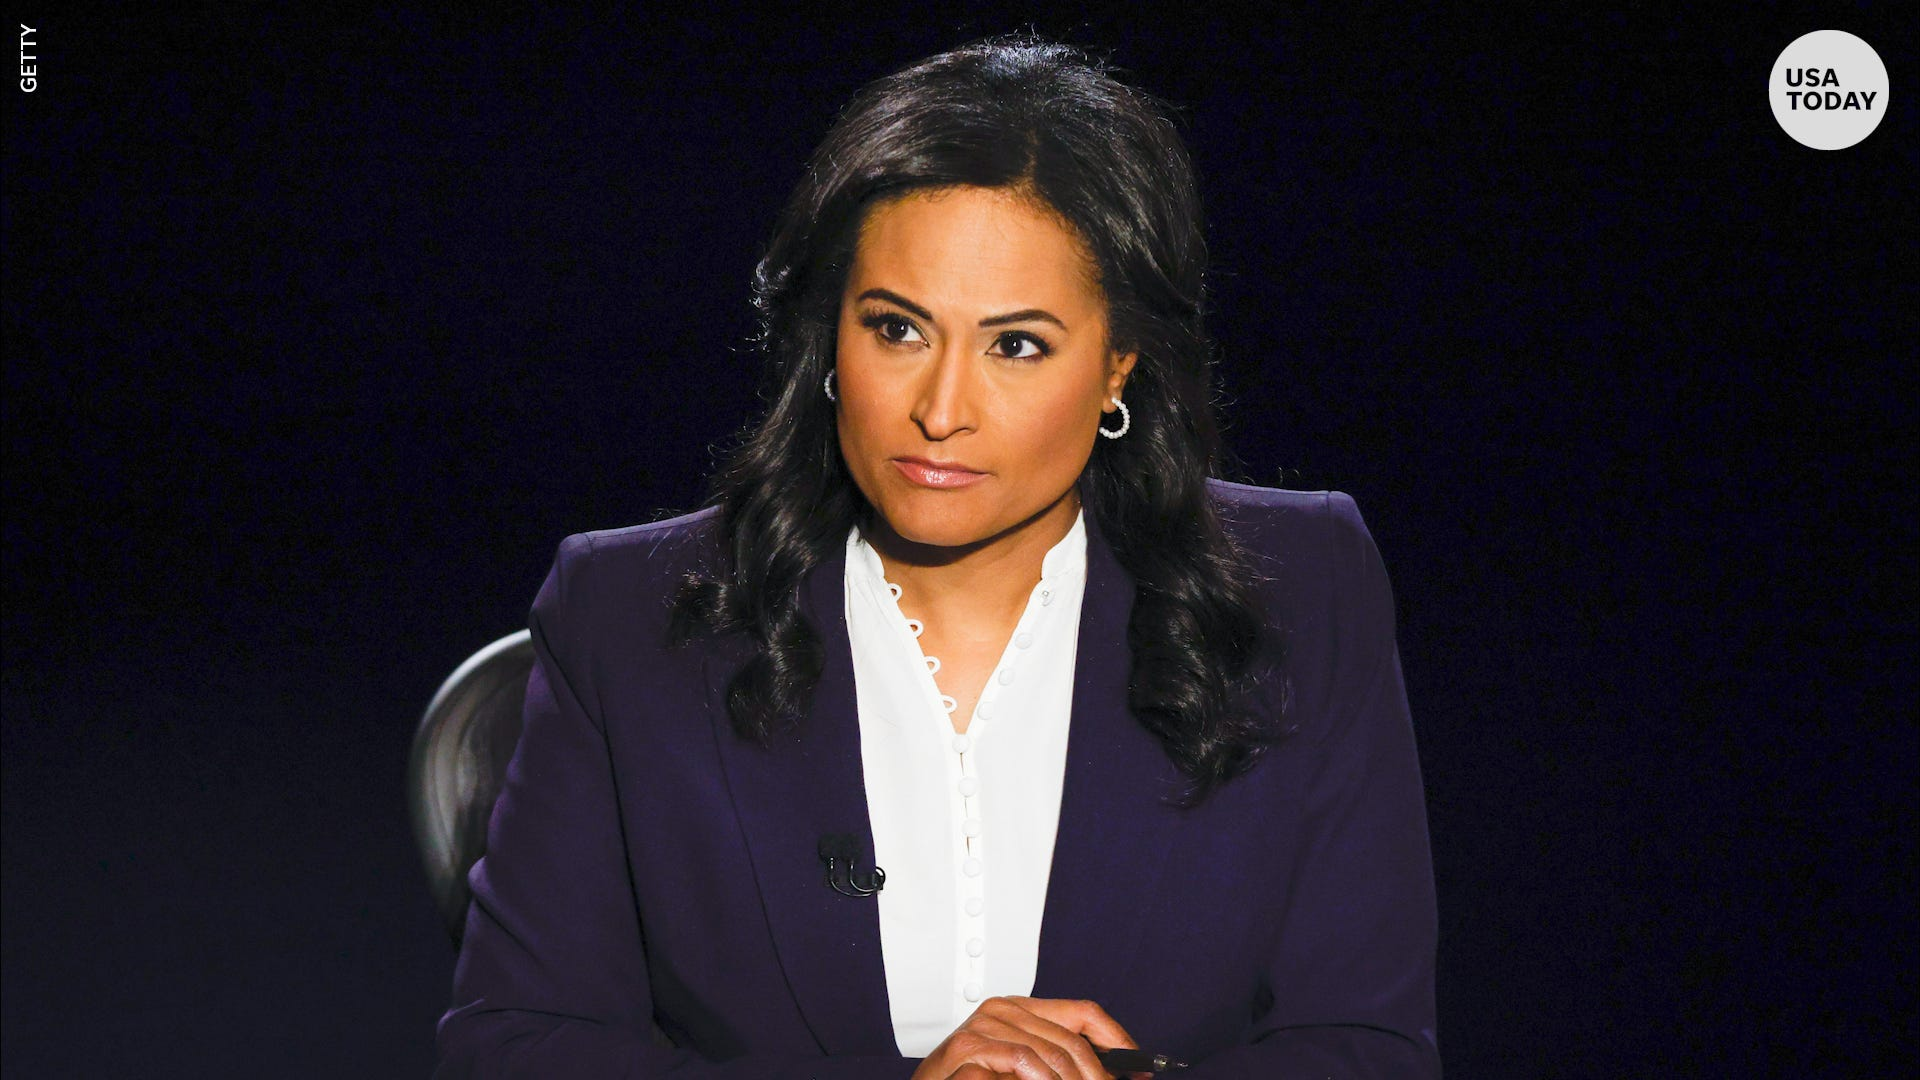 NBC's Kristen Welker to welcome first child, shares letter about infertility struggles